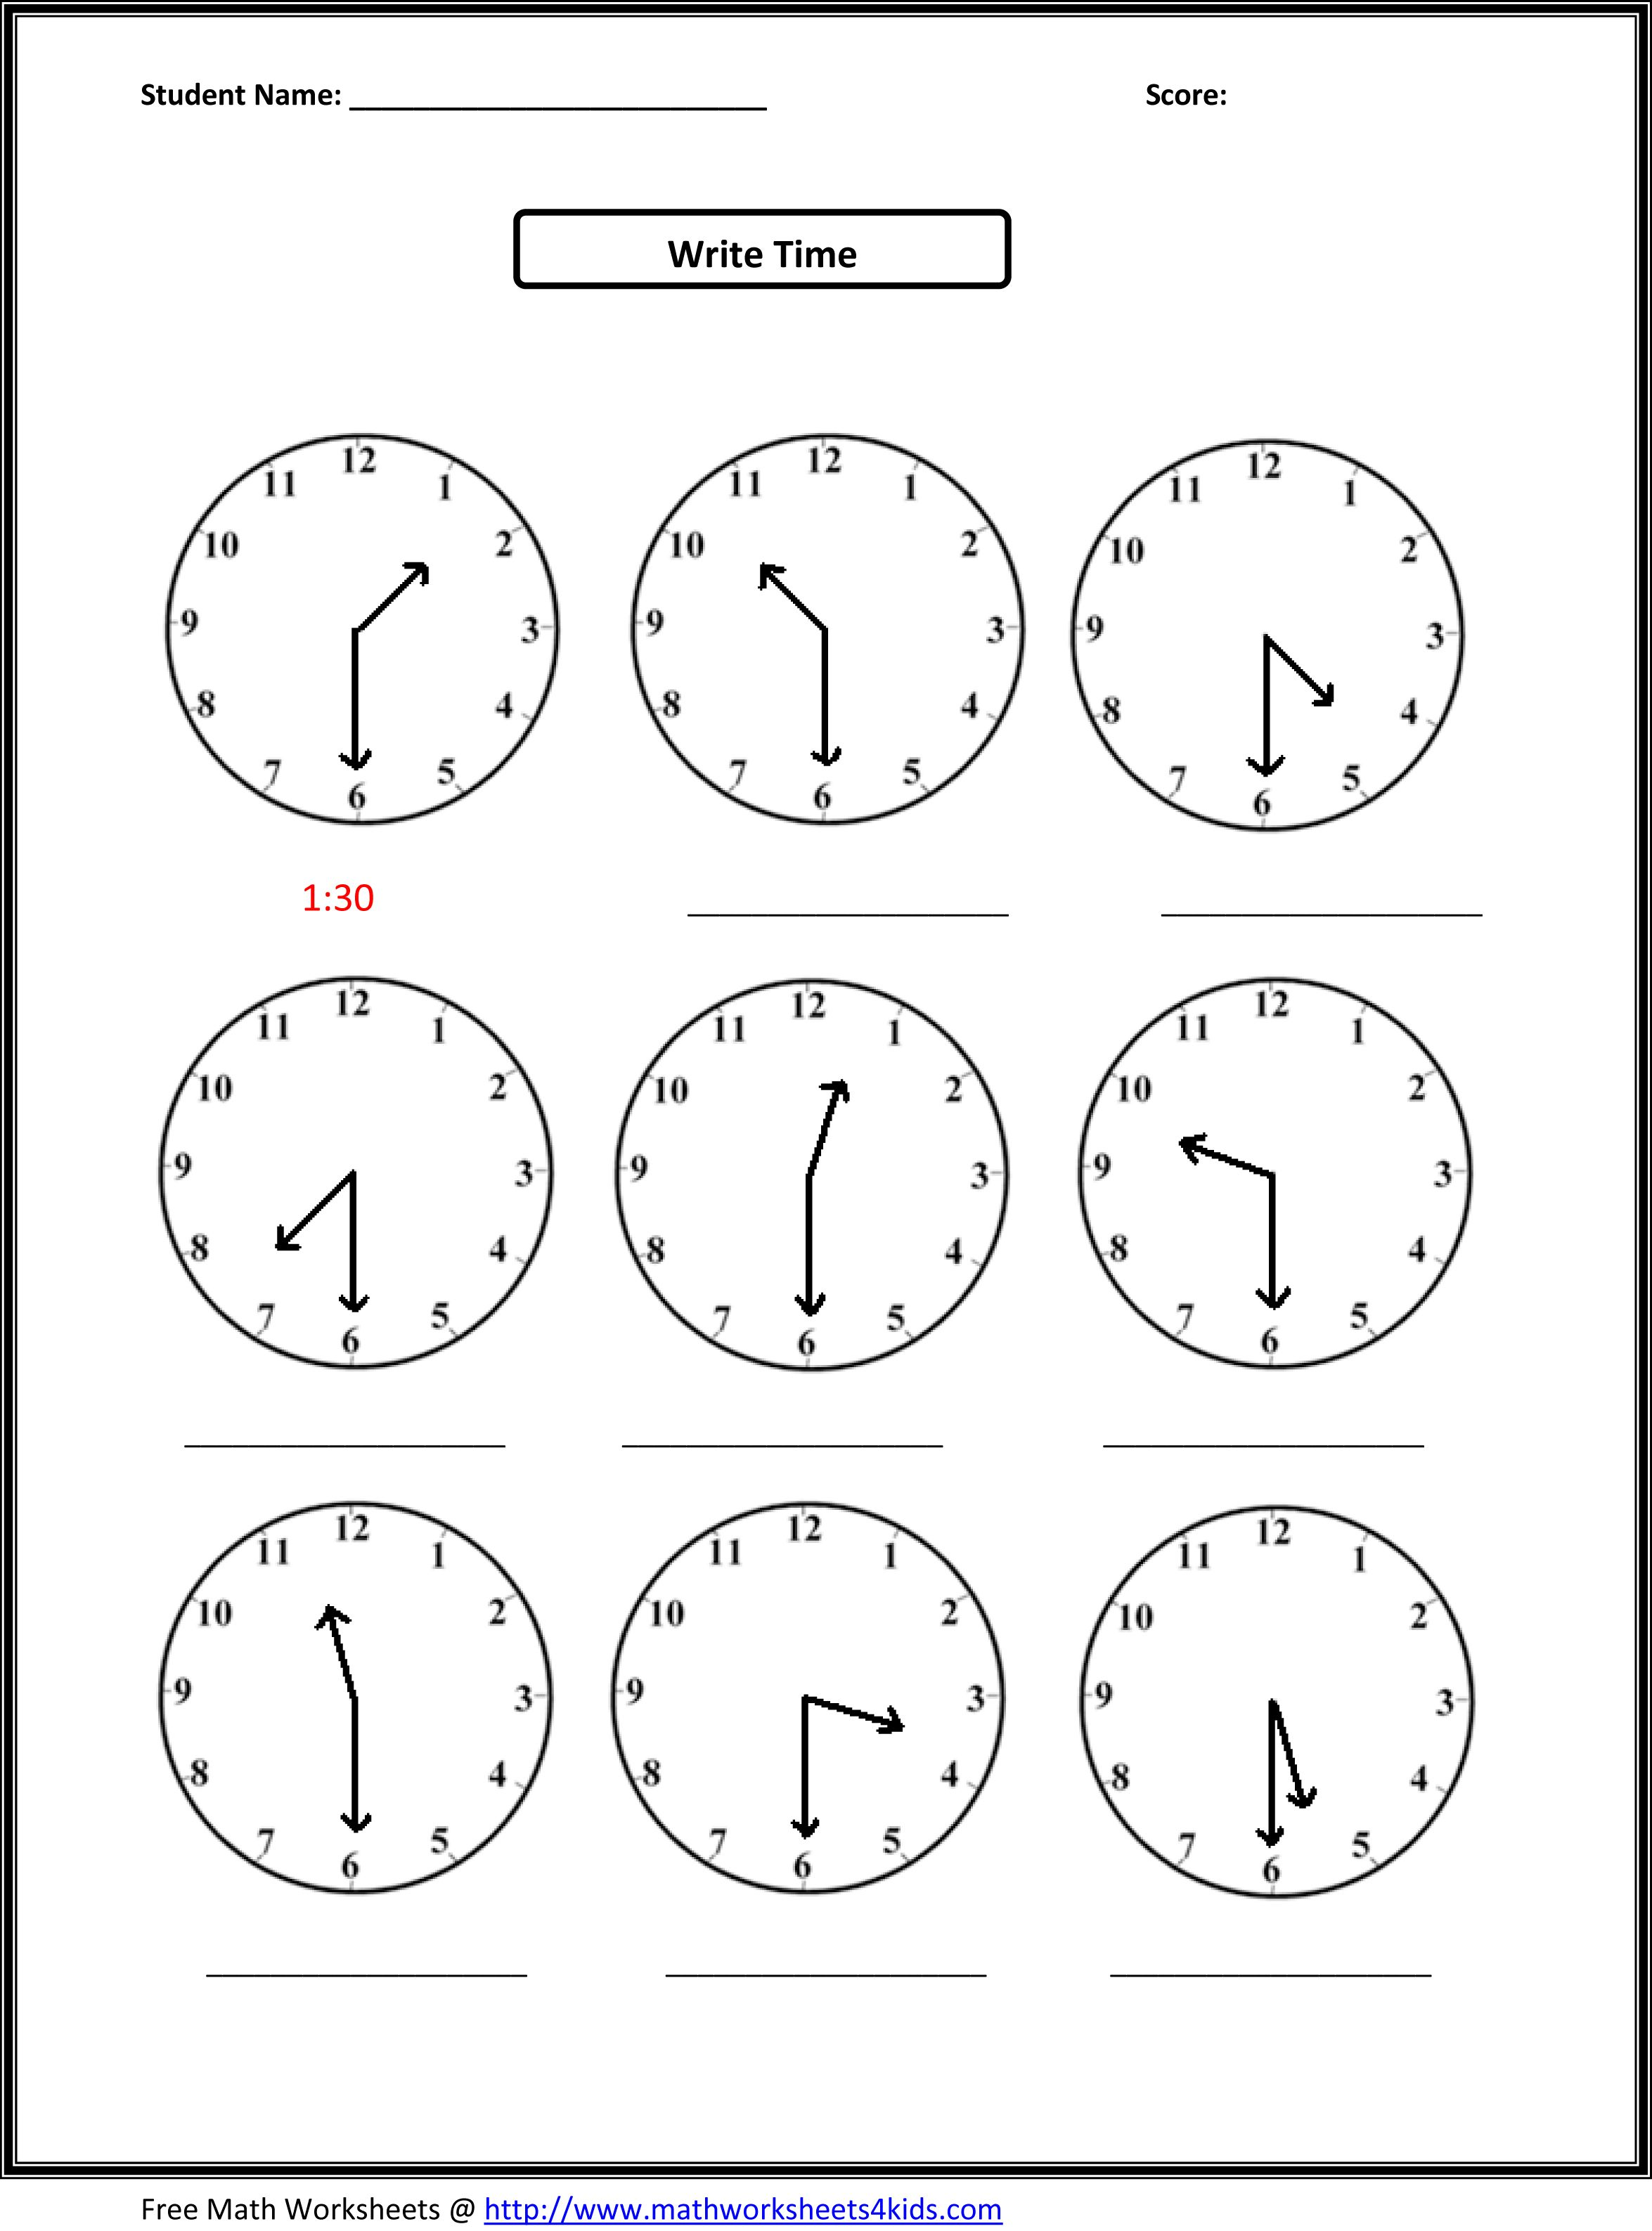 Weirdmailus  Unique Worksheet On Time For Grade   Reocurent With Hot Free Printable Telling Time Worksheets Nd Grade  Reocurent With Agreeable Free Printable Abc Worksheets Also Science Experiment Worksheet In Addition First Grade Multiplication Worksheets And Patterns Of Evolution And Selection Worksheet Answers As Well As Number Pairs Worksheet Additionally Worksheet Worksheets From Reocurentcom With Weirdmailus  Hot Worksheet On Time For Grade   Reocurent With Agreeable Free Printable Telling Time Worksheets Nd Grade  Reocurent And Unique Free Printable Abc Worksheets Also Science Experiment Worksheet In Addition First Grade Multiplication Worksheets From Reocurentcom